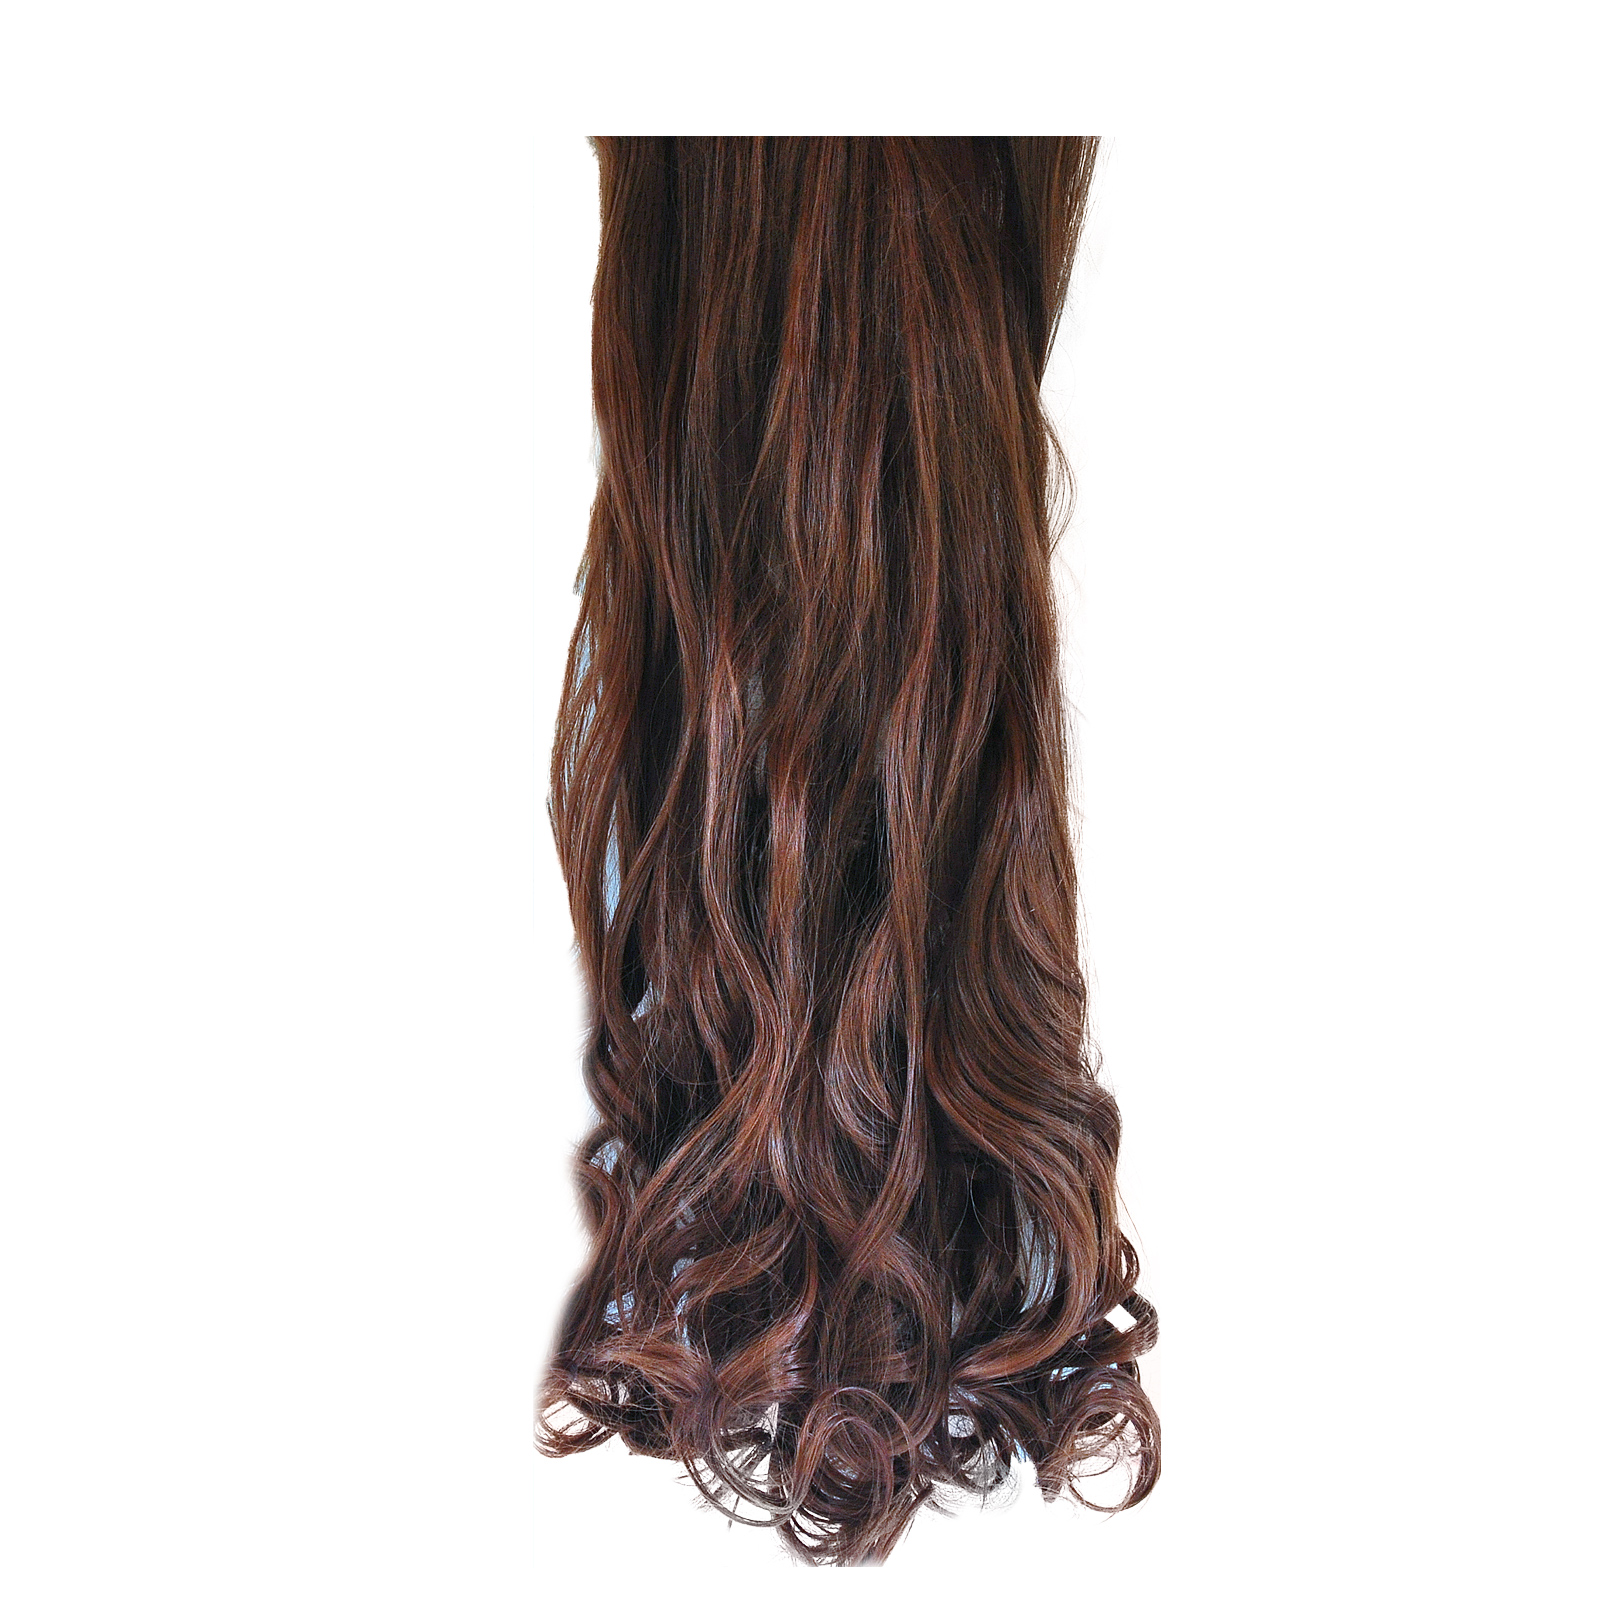 Full Head Clip In Hair Extensions curly/wellig 9/9